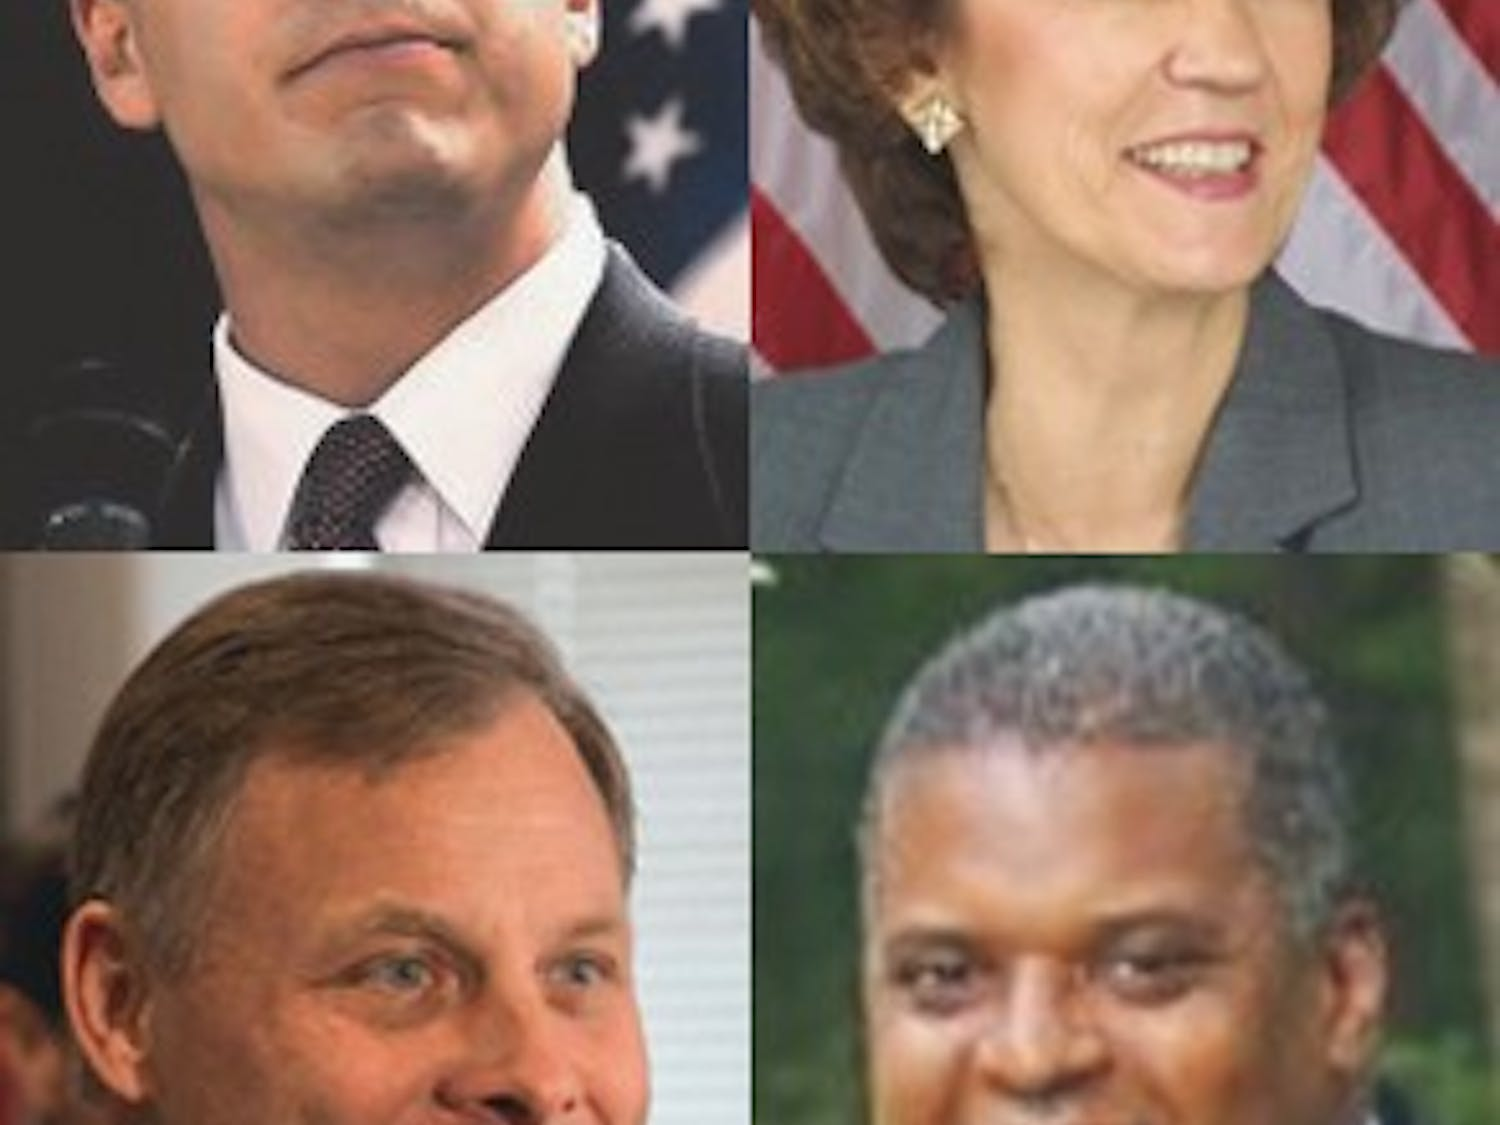 Upper Left: Cal Cunningham, Bottom Left: Richard Burr, Top Right: Elaine Marshall, Bottom Right: Kenneth Lewis